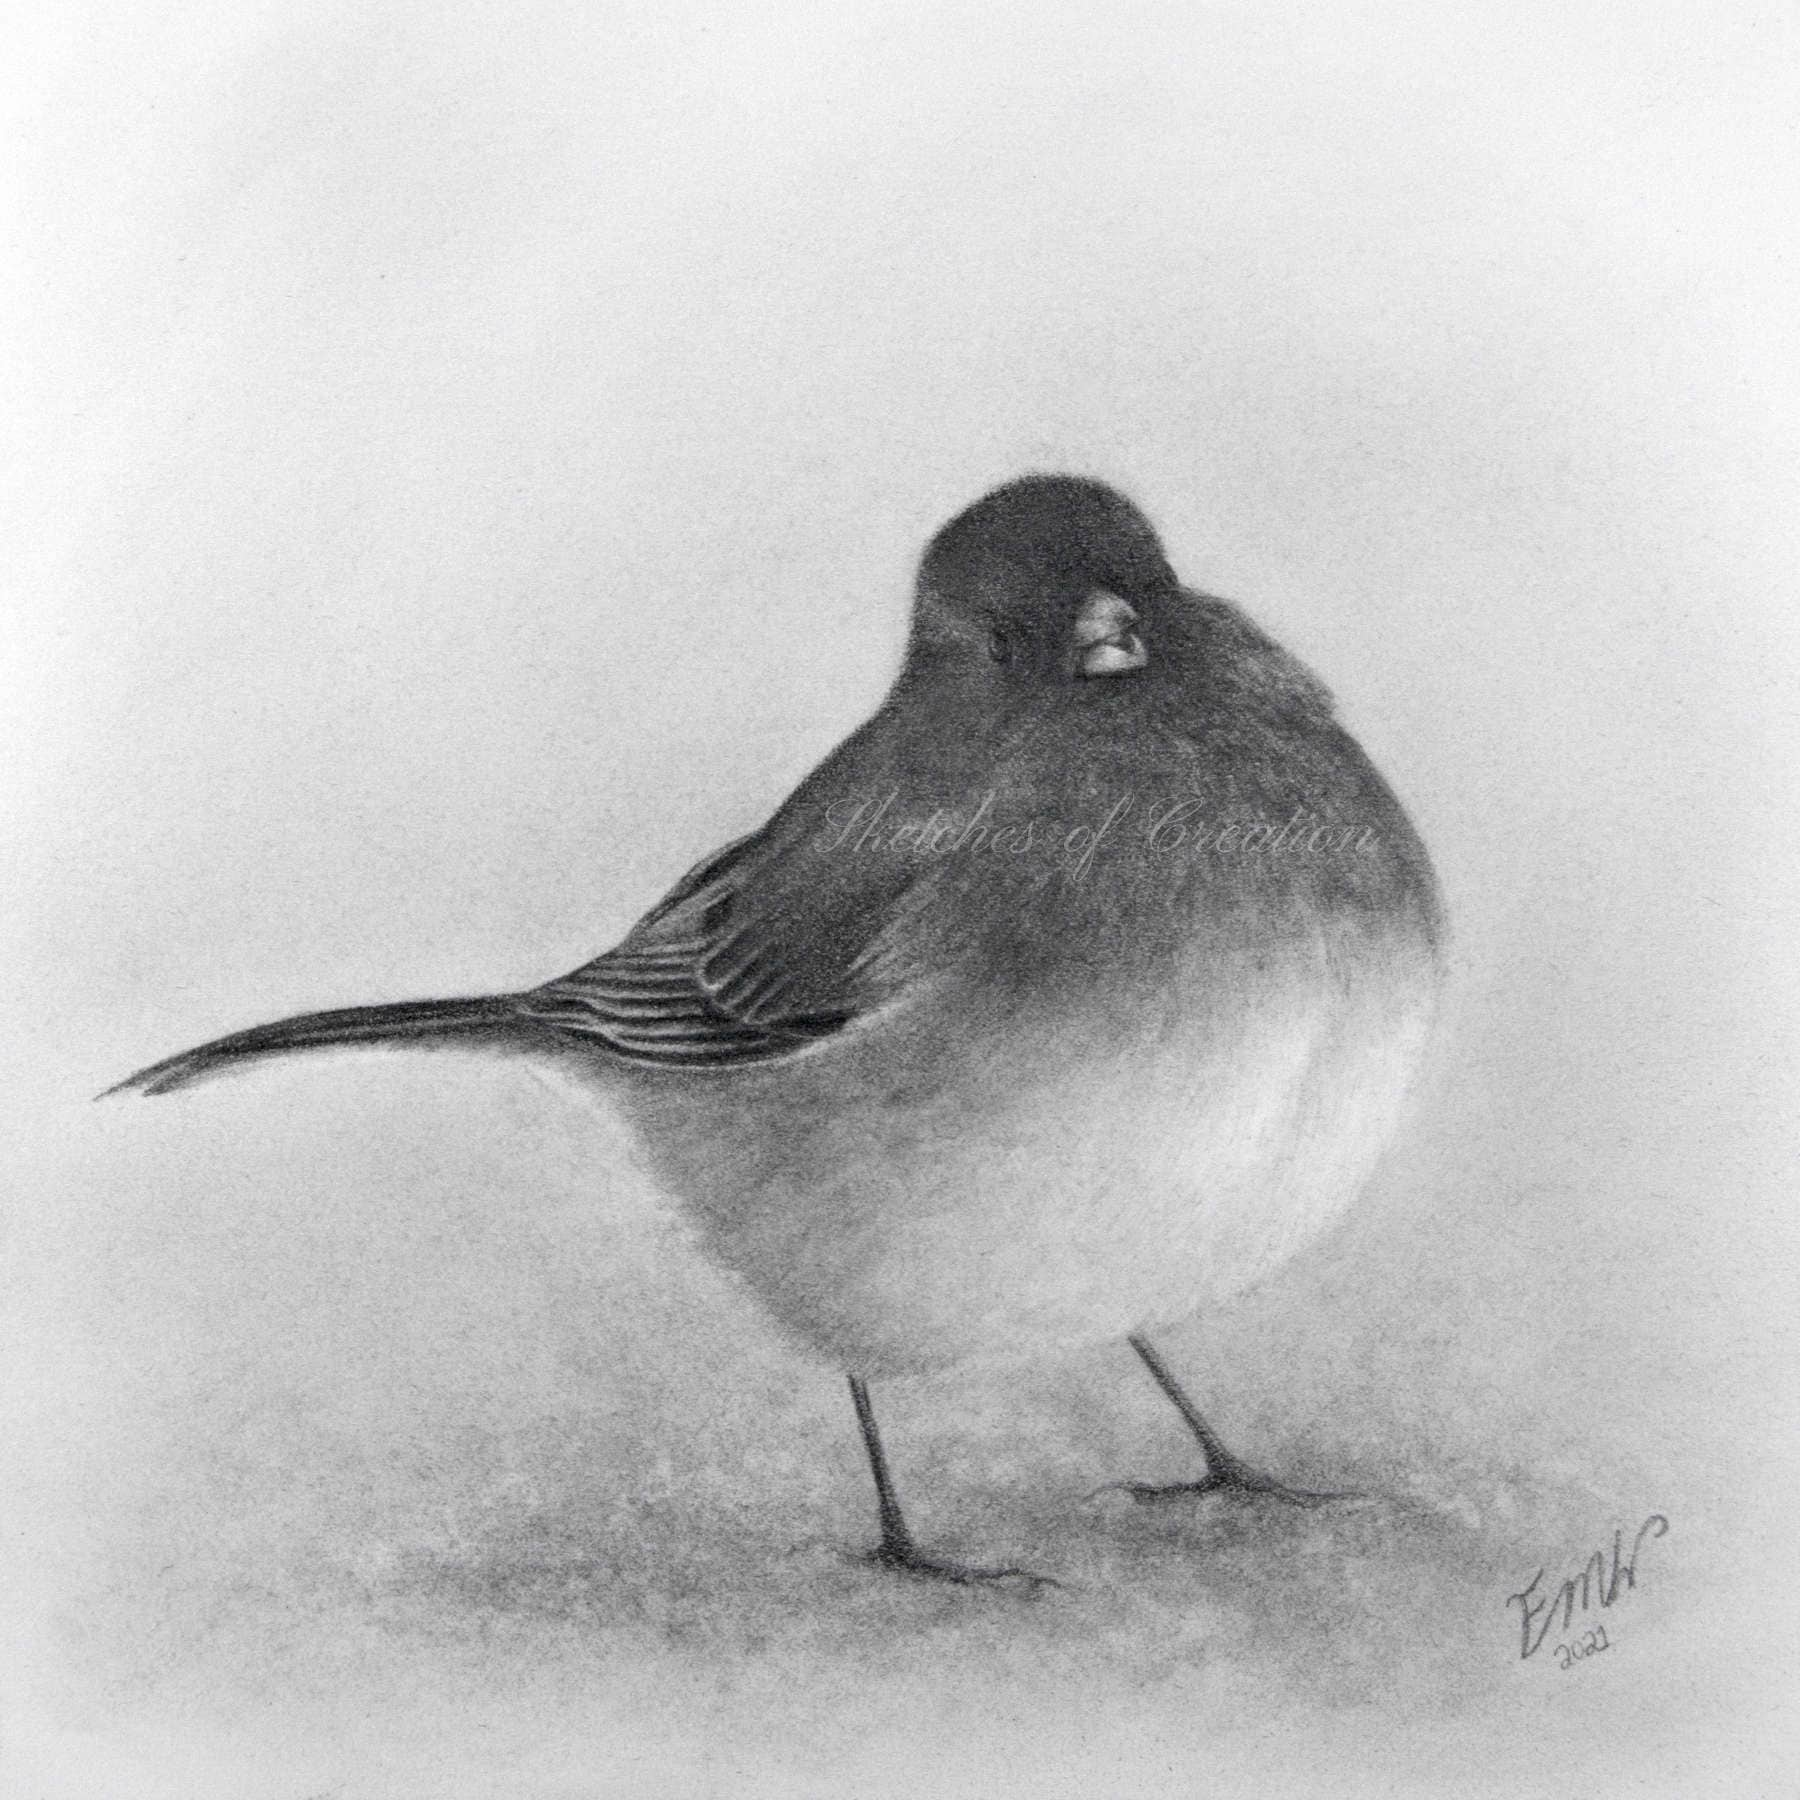 'Junco' a drawing of a Dark-eyed Junco. approximately 5x5 inches. Completed April 2021